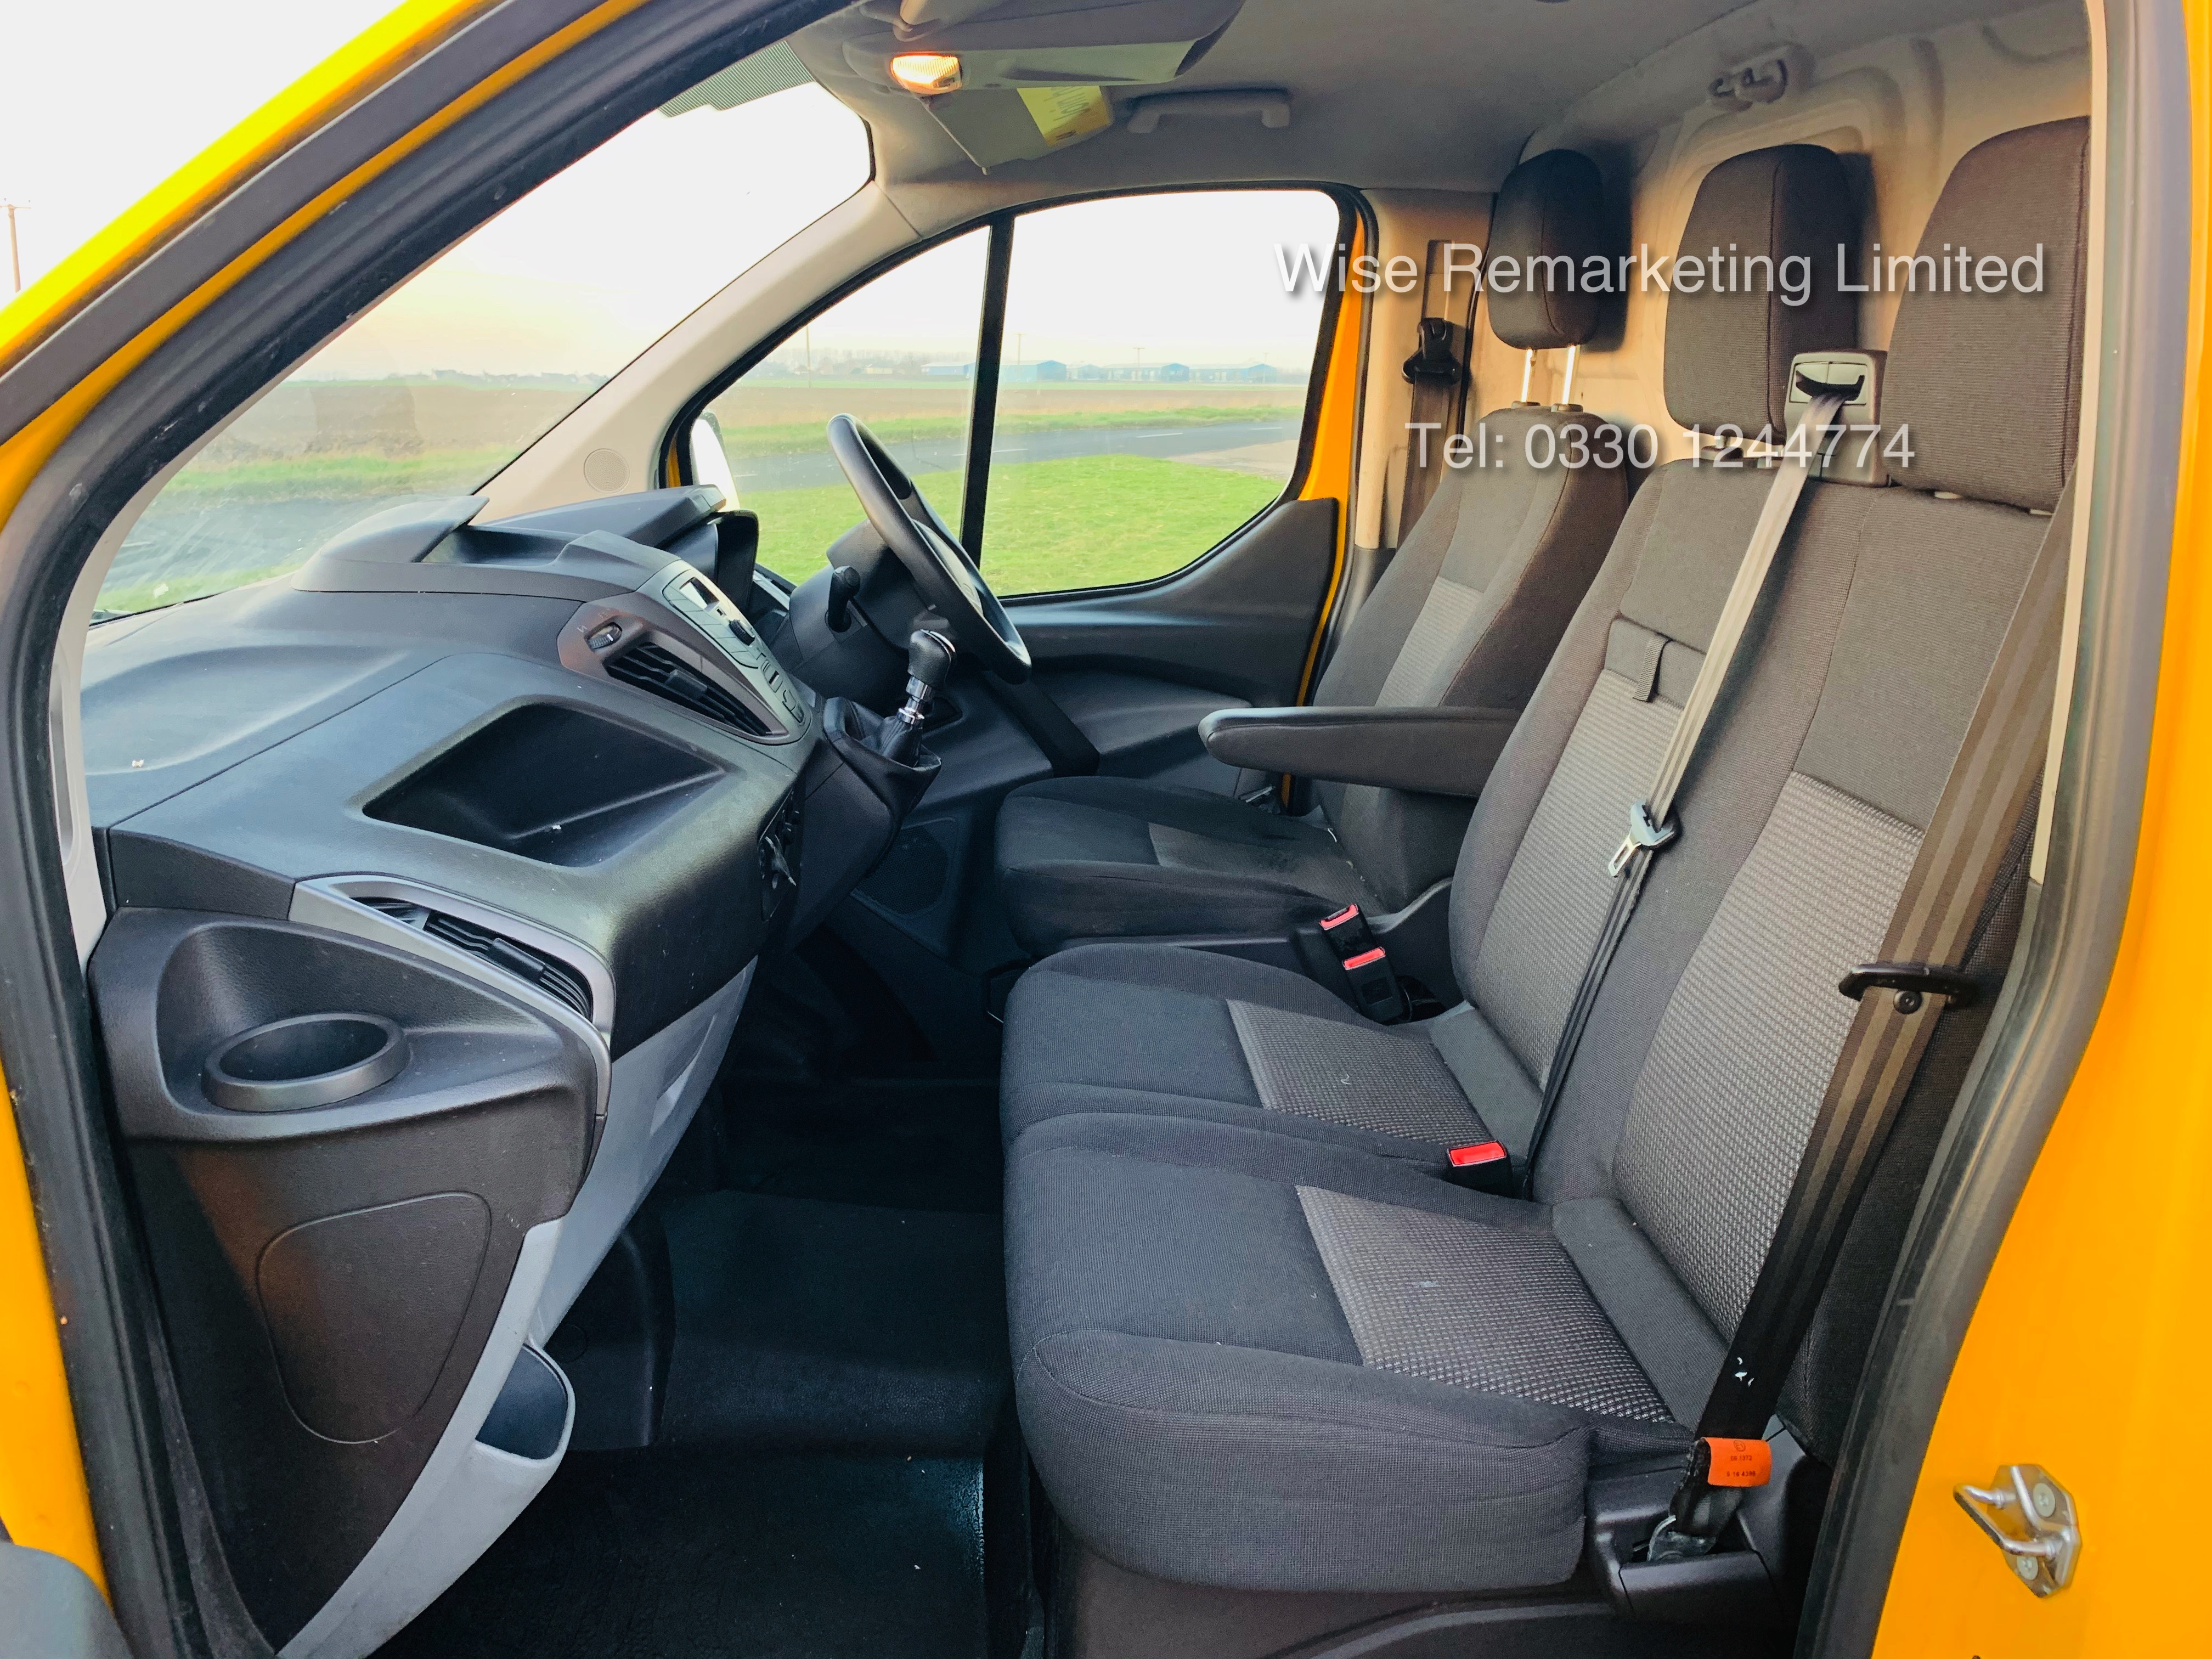 Ford Transit Custom 2.2 TDCI 310 Eco-Tech - 2016 Model - 1 Keeper From New - Air Con - Ex AA Van - Image 11 of 23